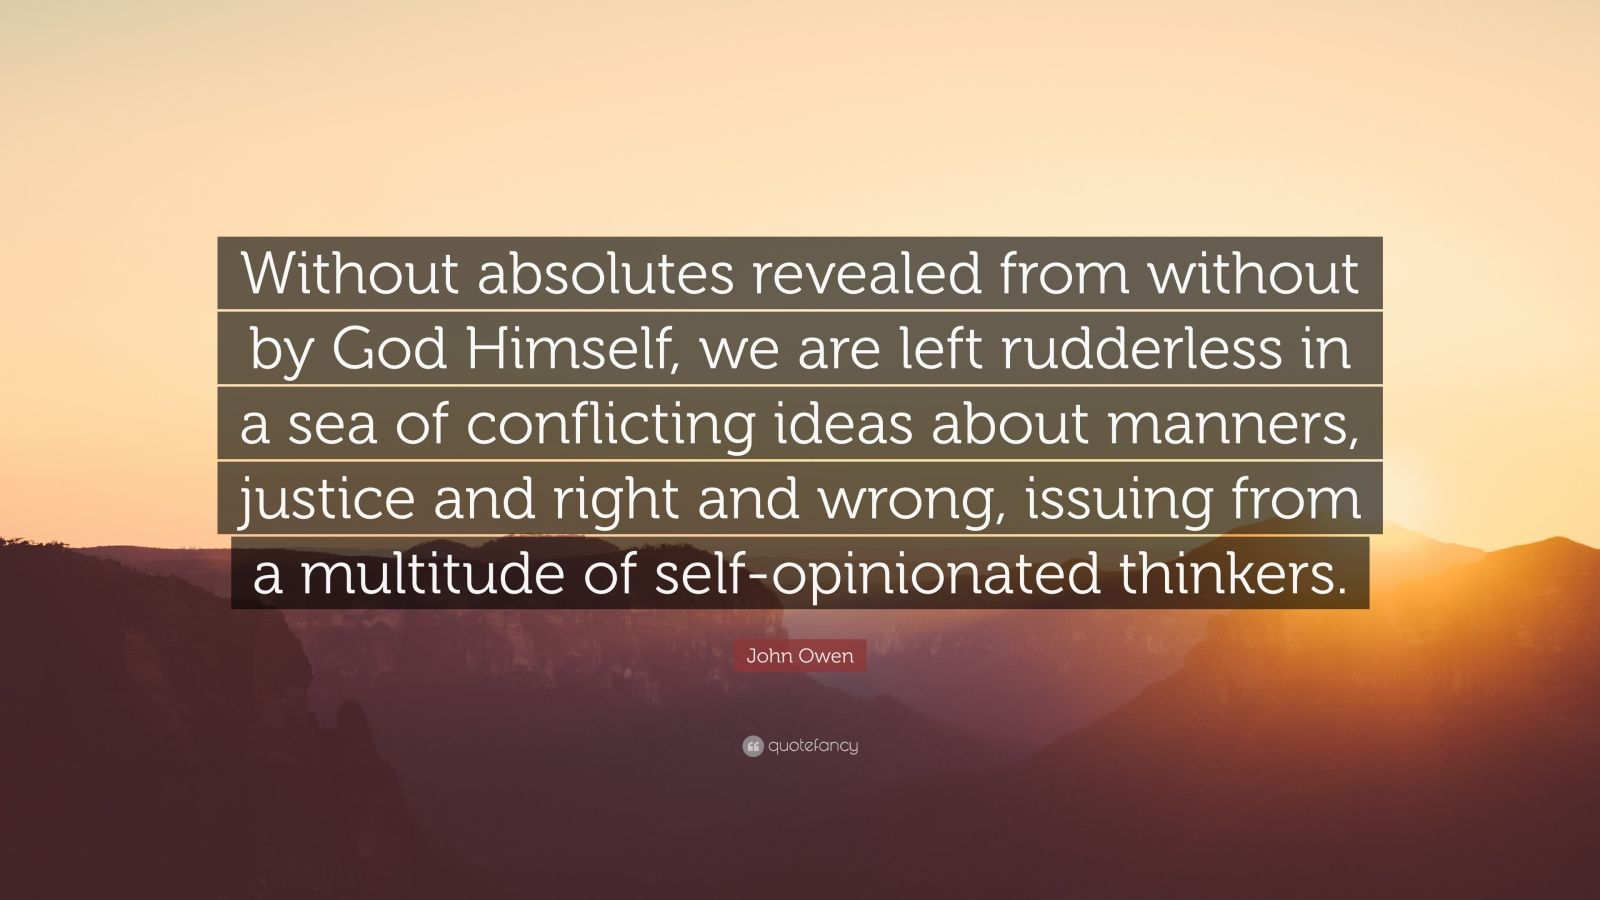 """John Owen Quote: """"Without absolutes revealed from without by God Himself, we are left rudderless in a sea of conflicting ideas about manners, justice and right and wrong, issuing from a multitude of self-opinionated thinkers."""""""